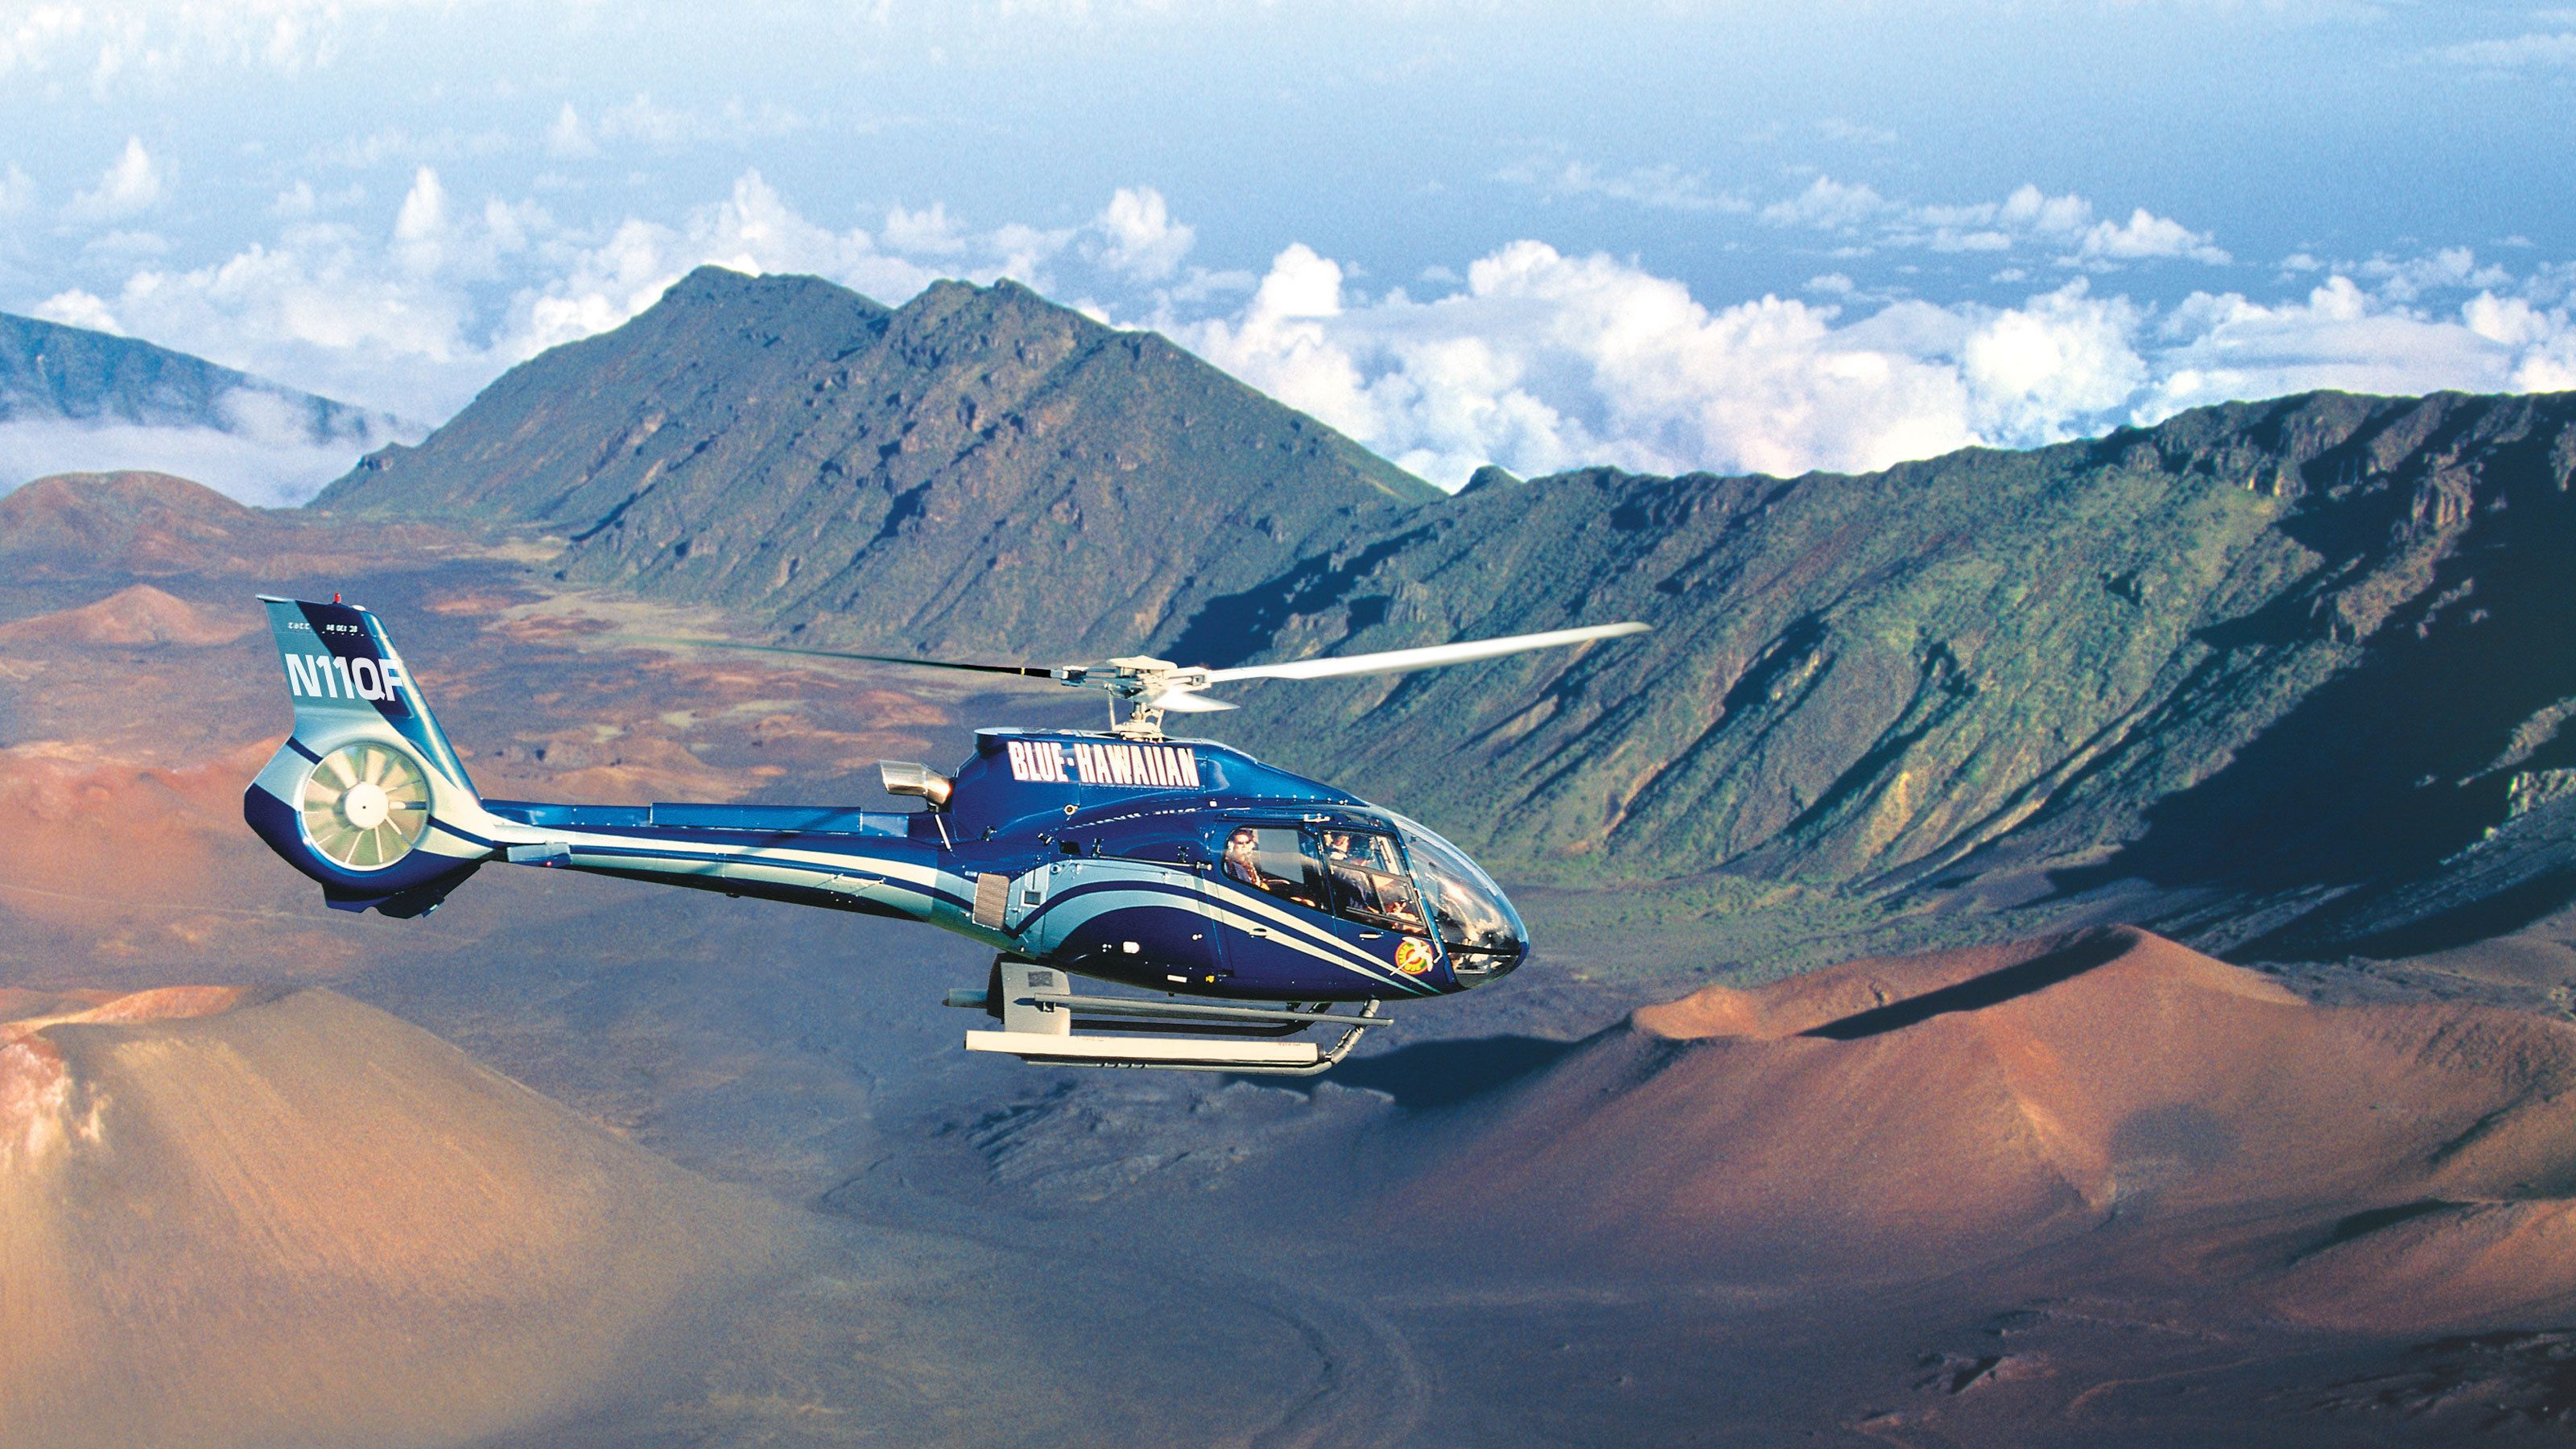 Ride in a helicopter over volcanic craters in Maui